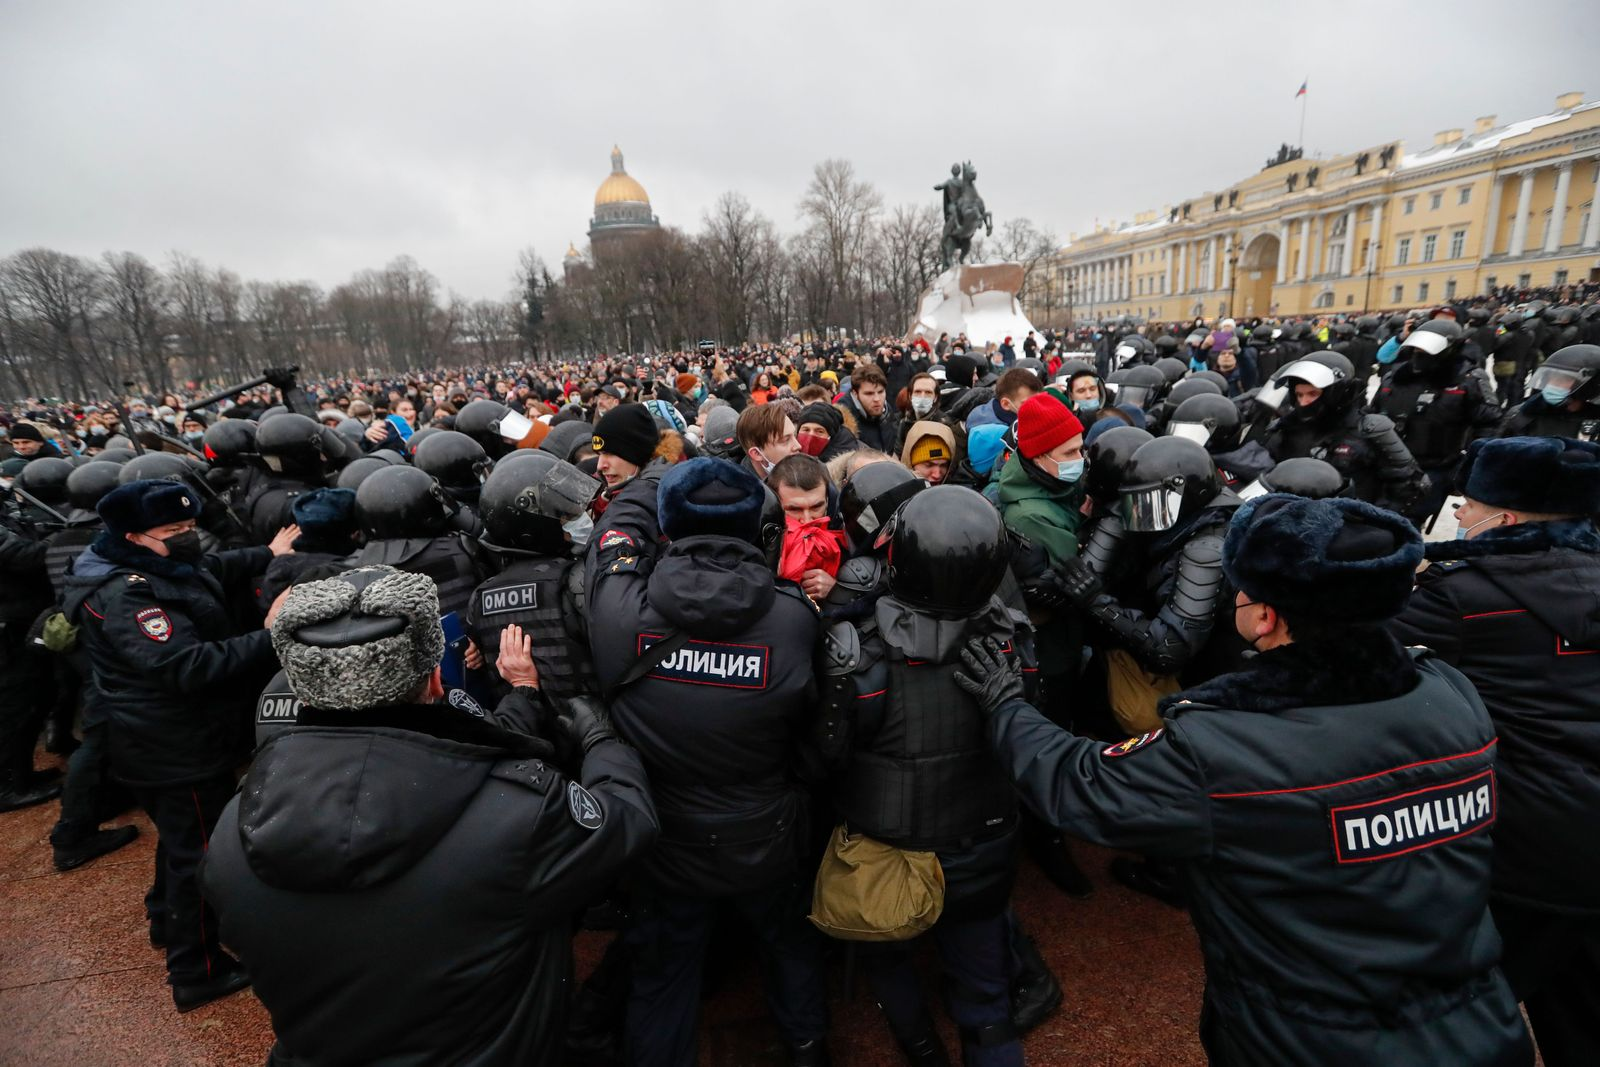 An unauthorized protest in support of Navalny in St. Petersburg, St Petersburg, Russian Federation - 23 Jan 2021